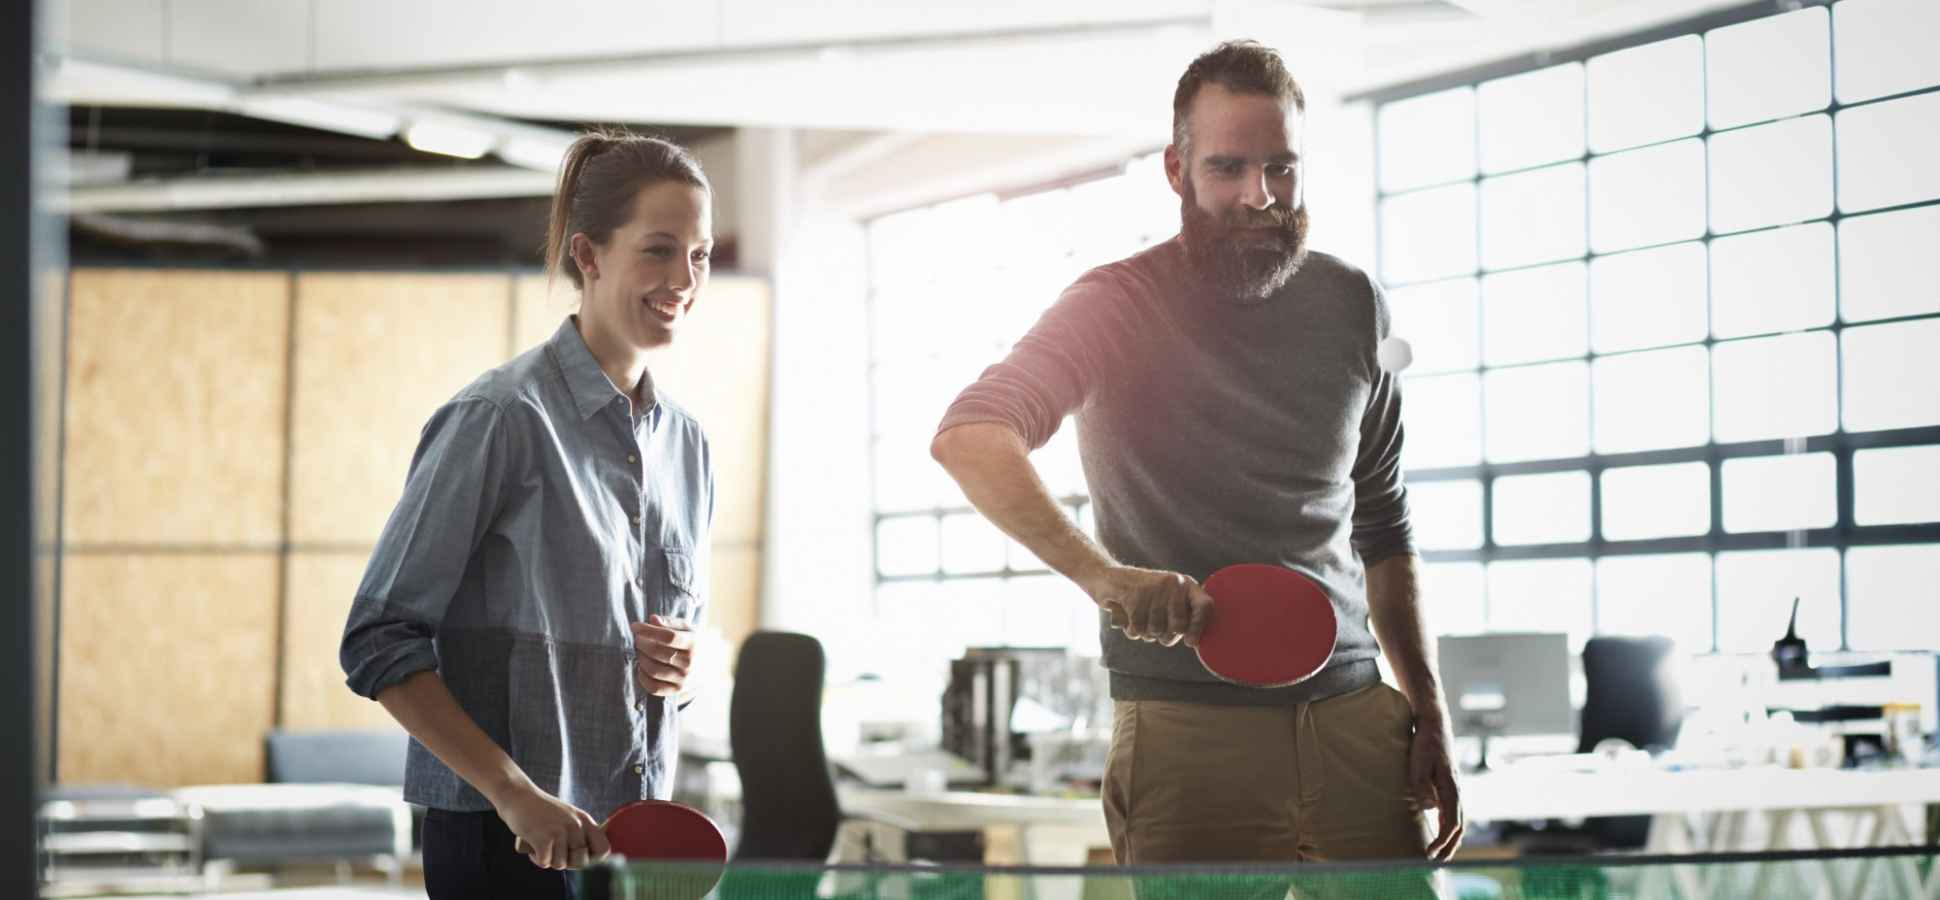 How to Attract Millennials With the Right Company Perks